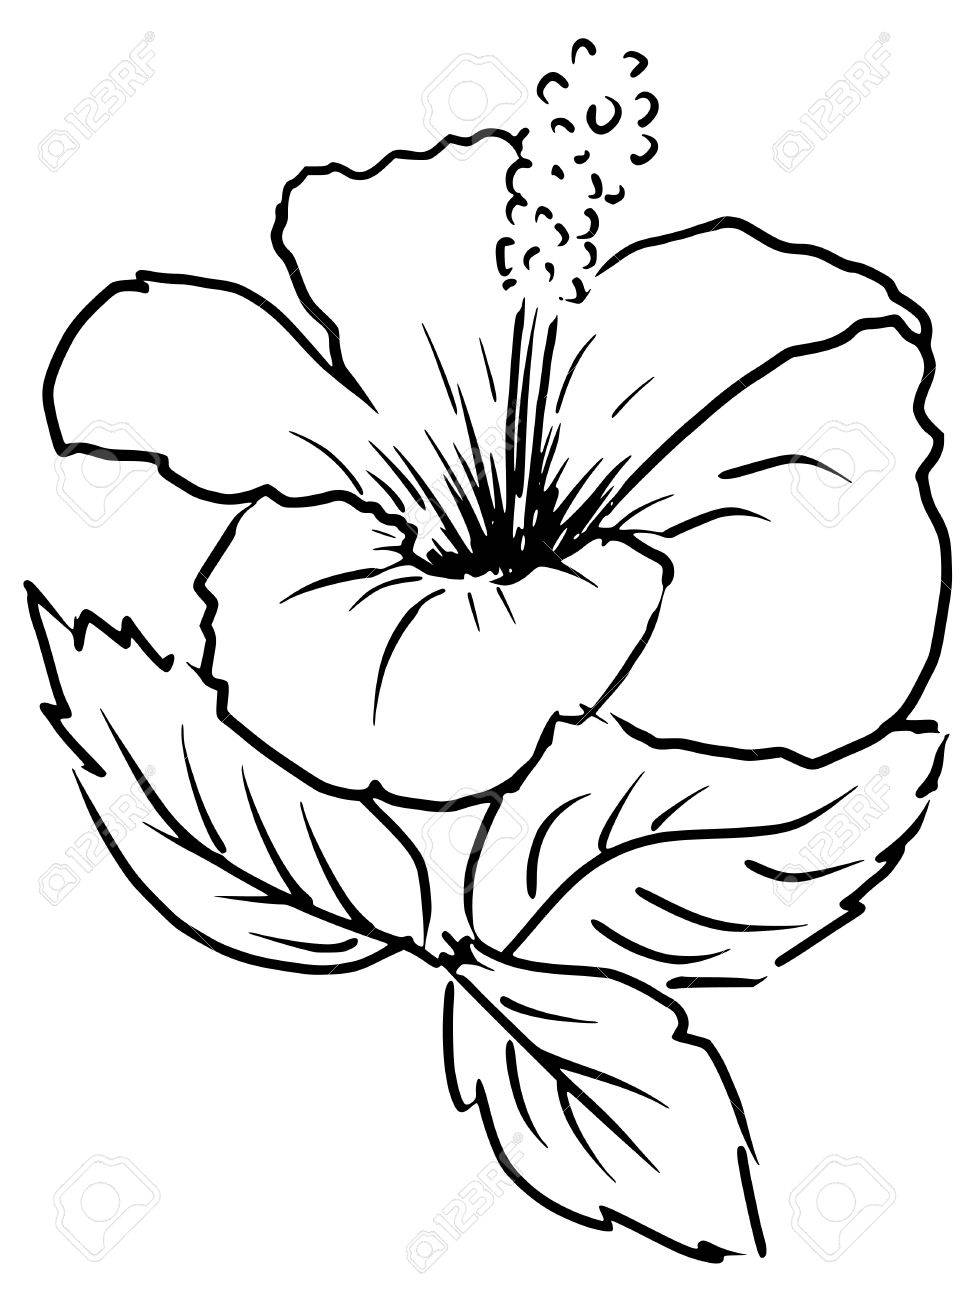 Sketch Cartoon Illustration Of Hibiscus Royalty Free Cliparts